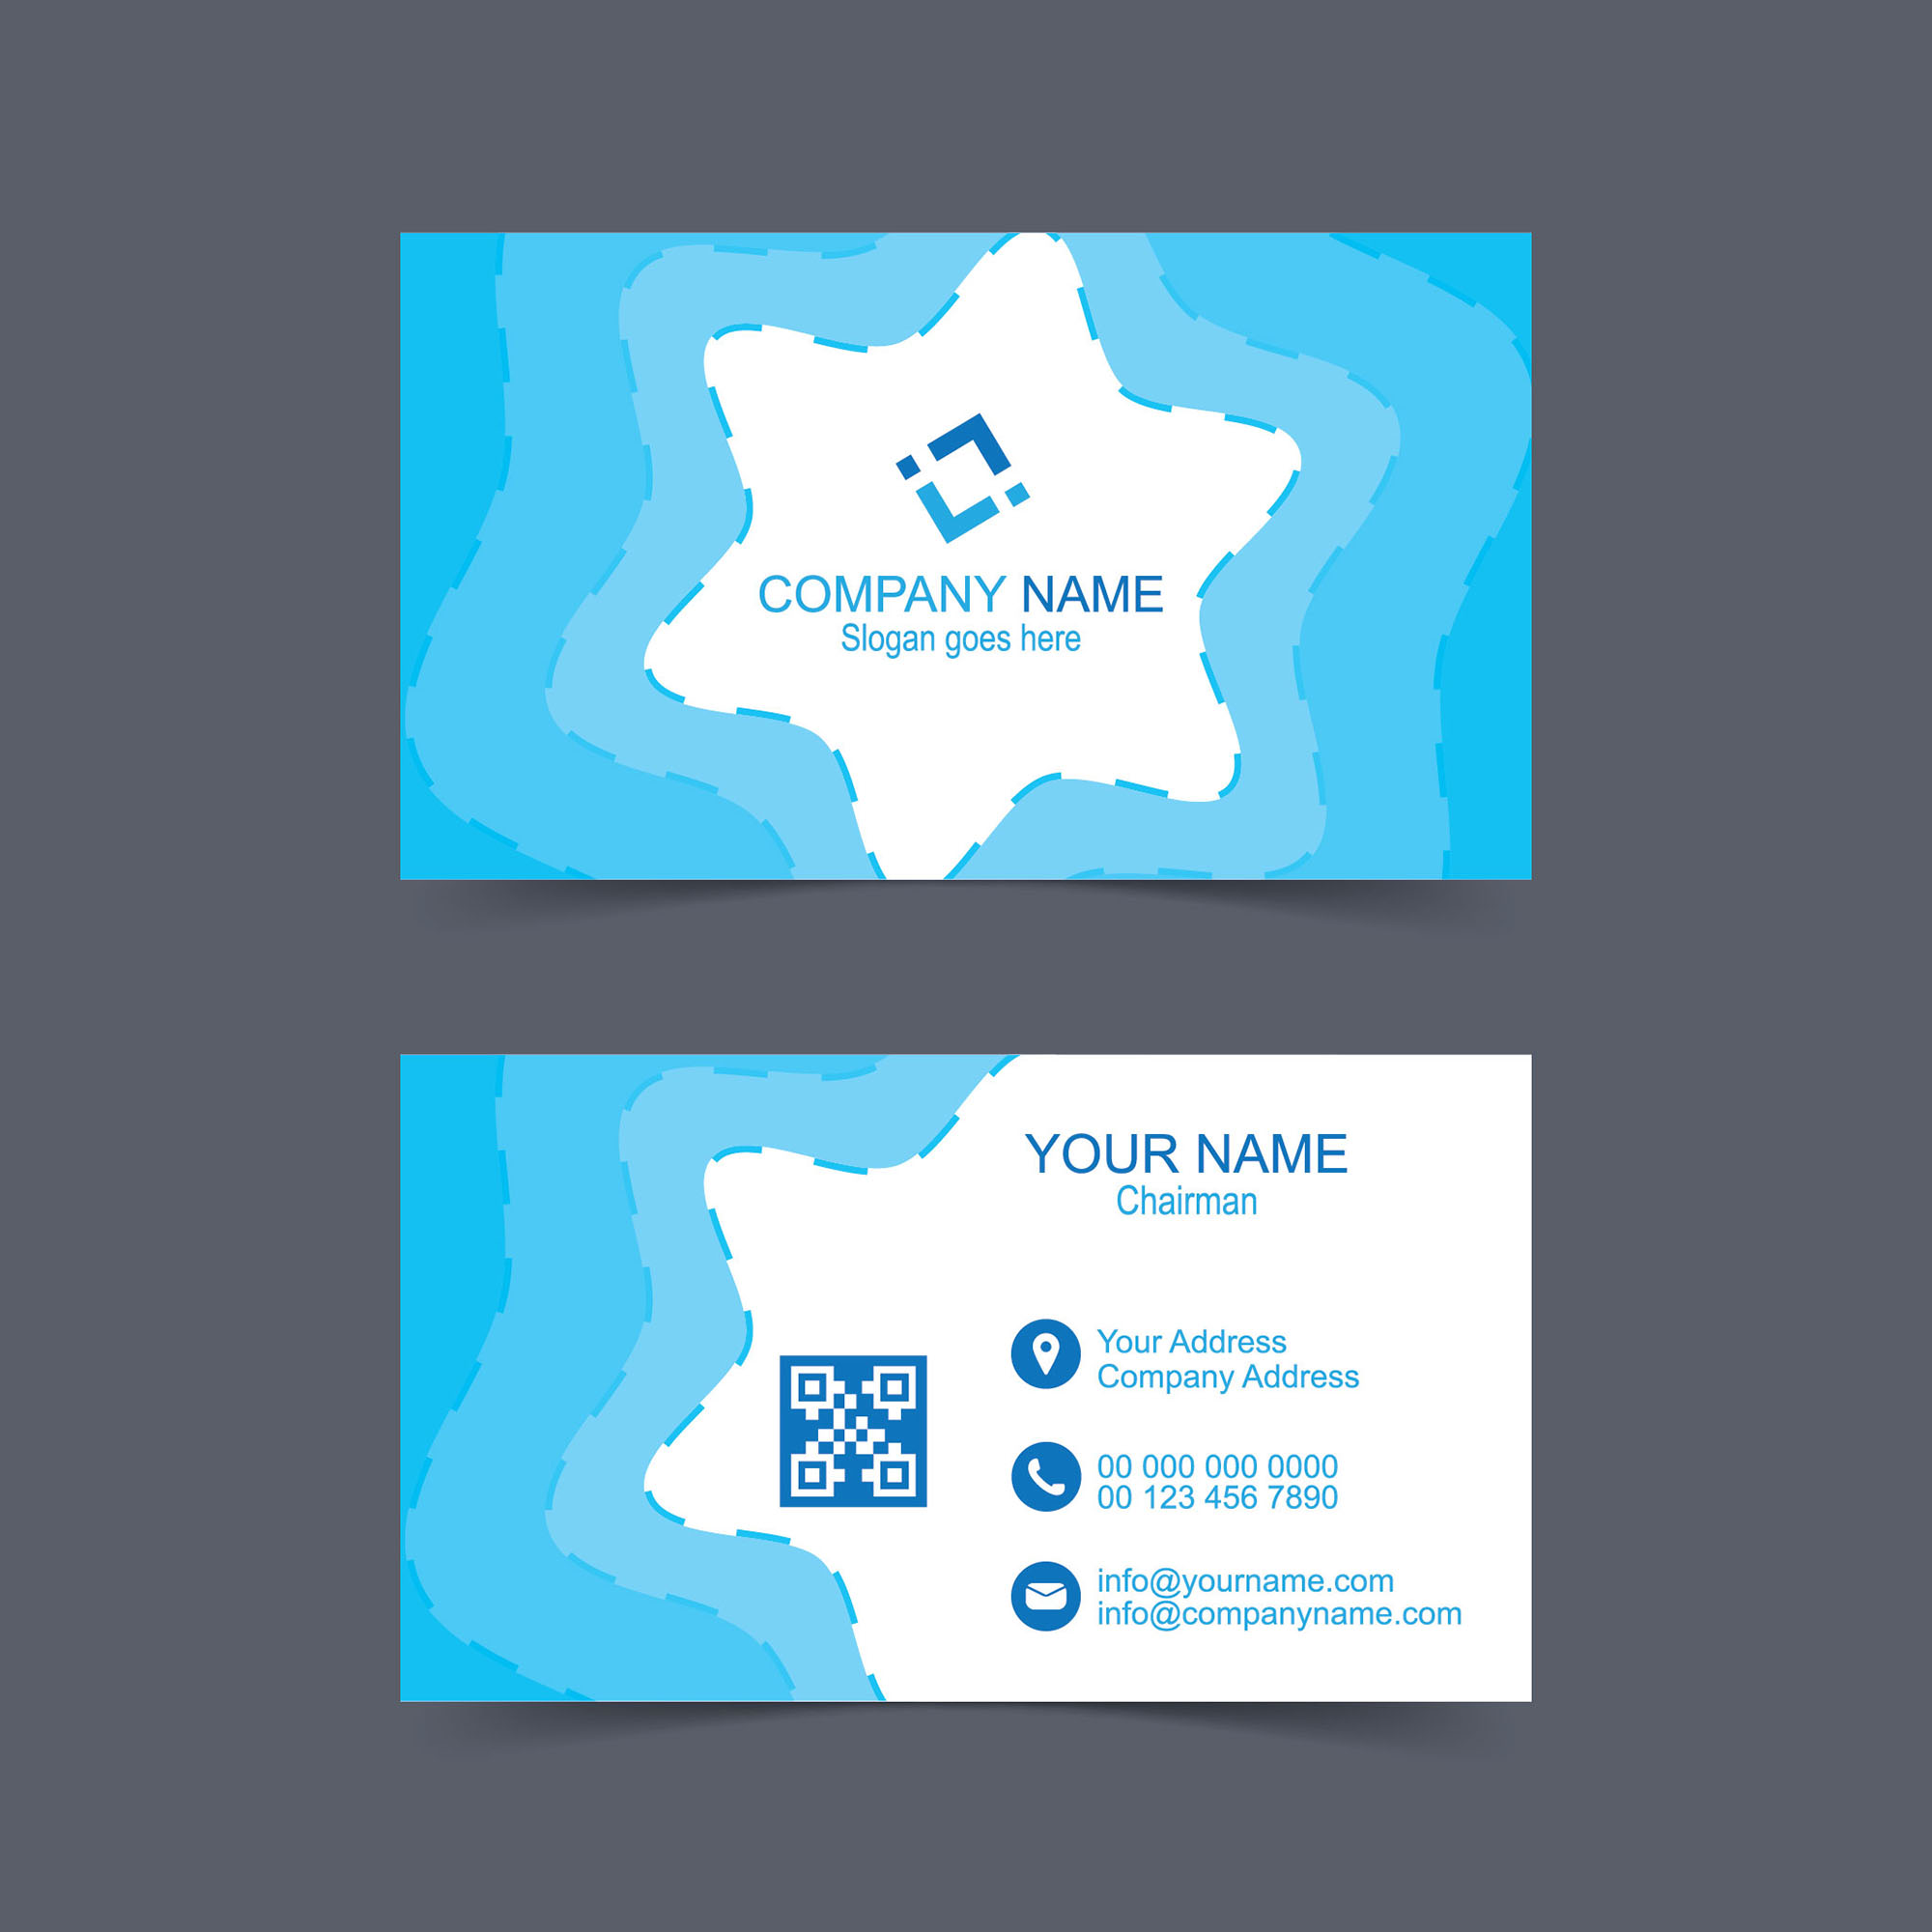 Blue And White Business Card Template Free Download Wisxicom - Business cards templates for free